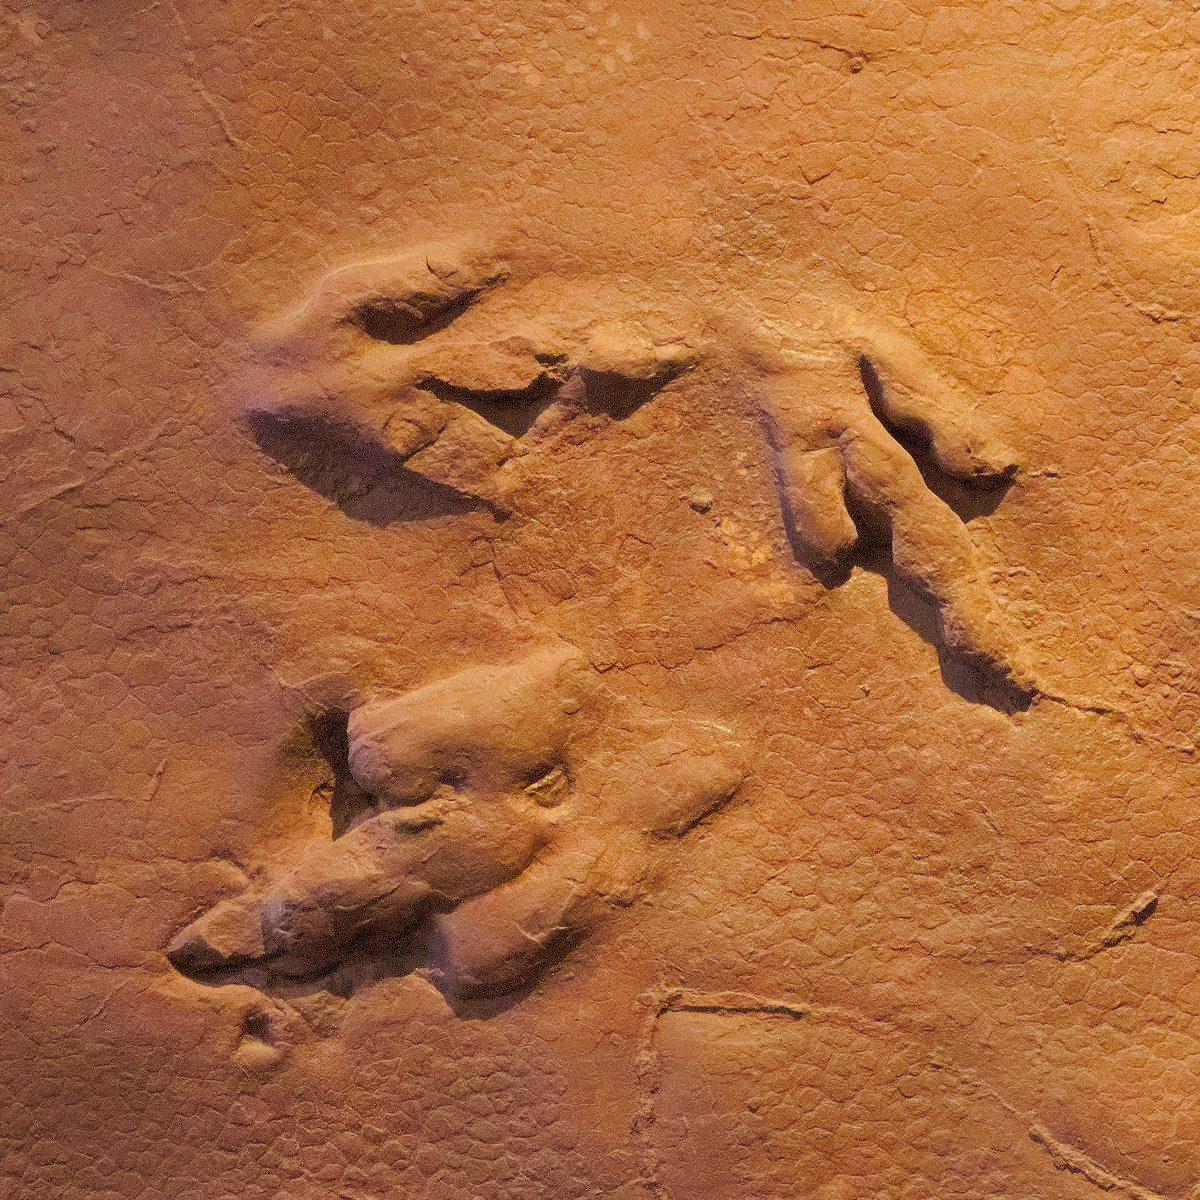 St George Dinosaur Discovery Site Wikipedia